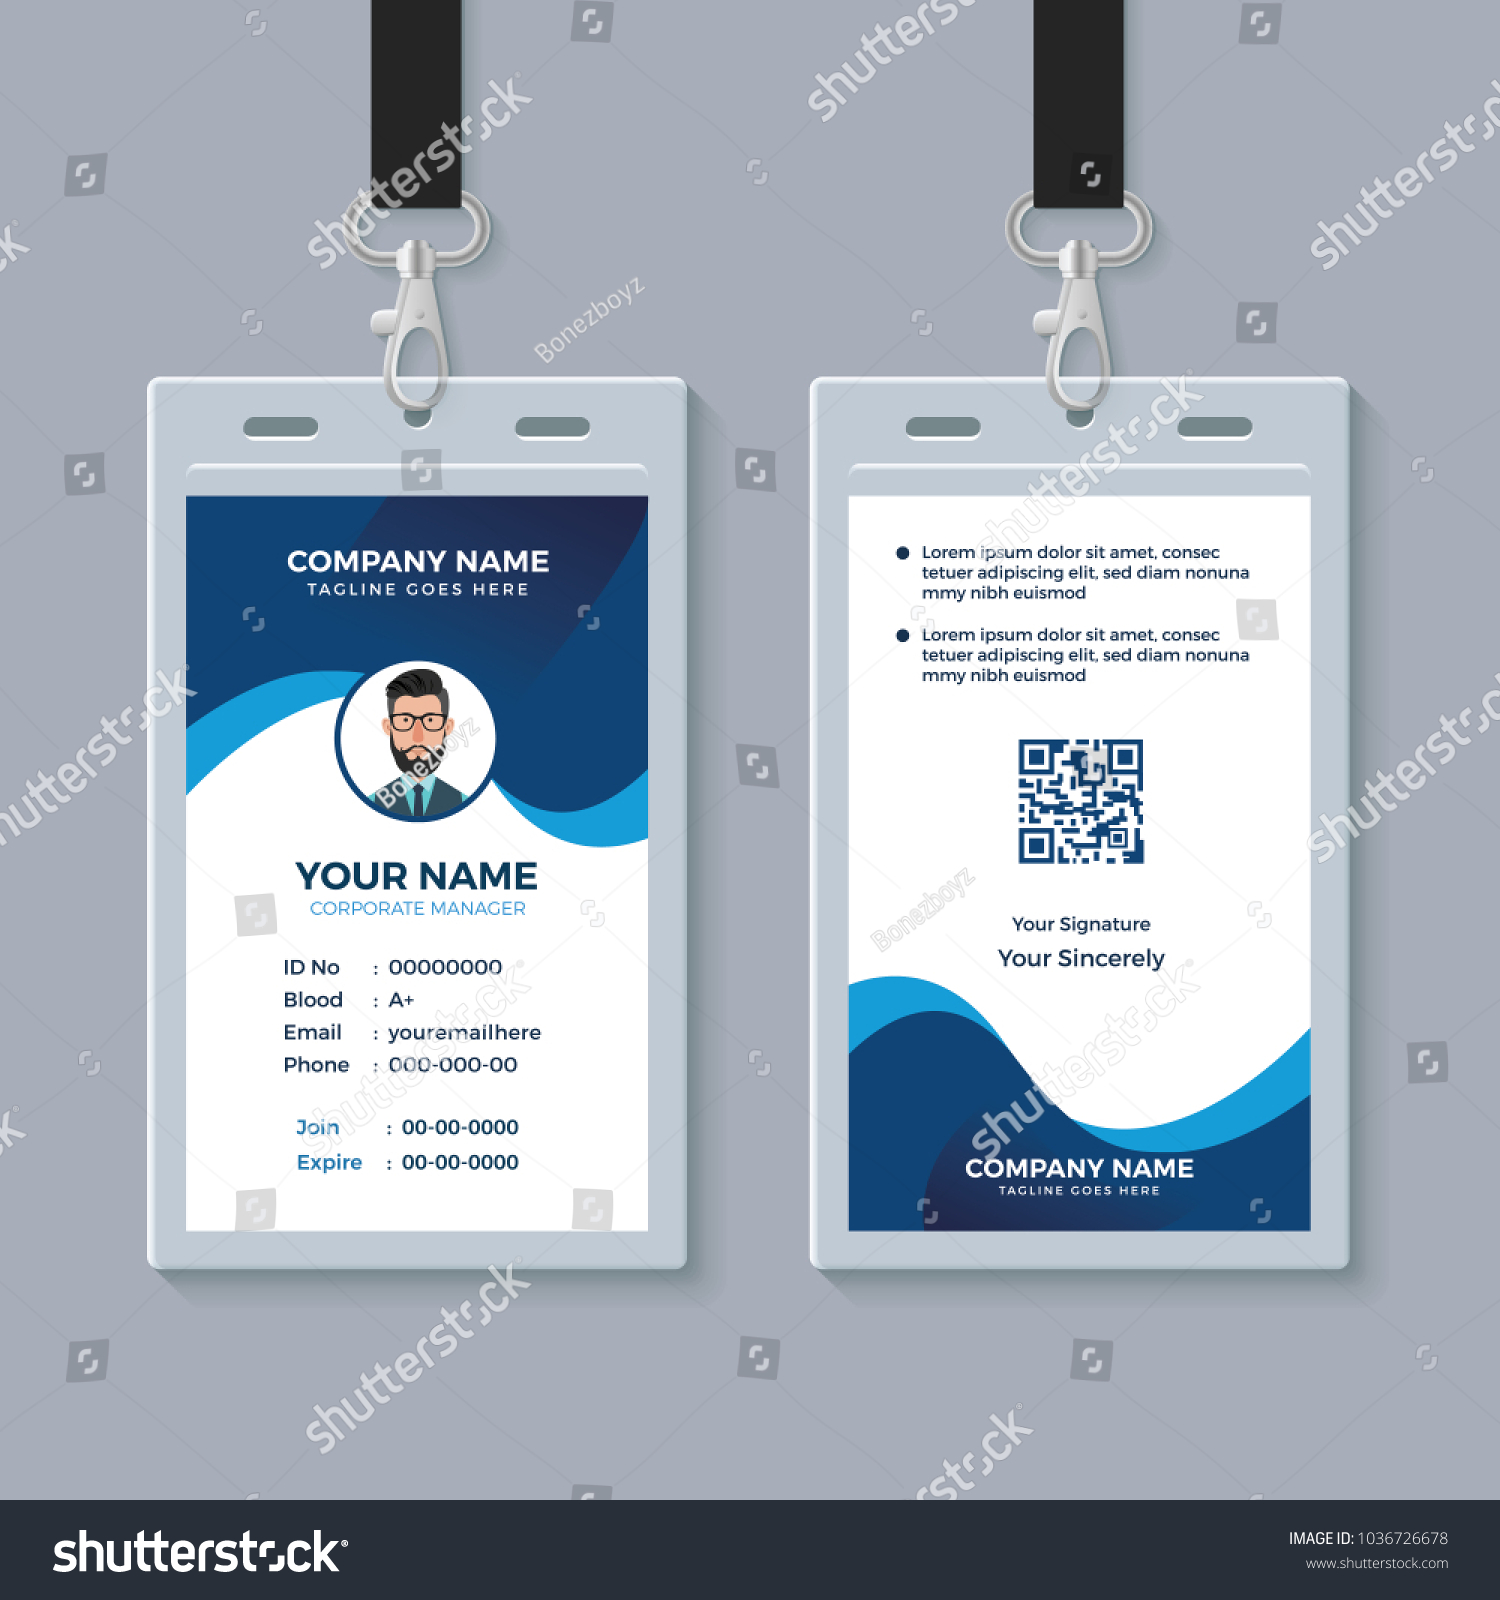 Modern Clean ID Card Template Stock Vector (Royalty Free) 1036726678 ...